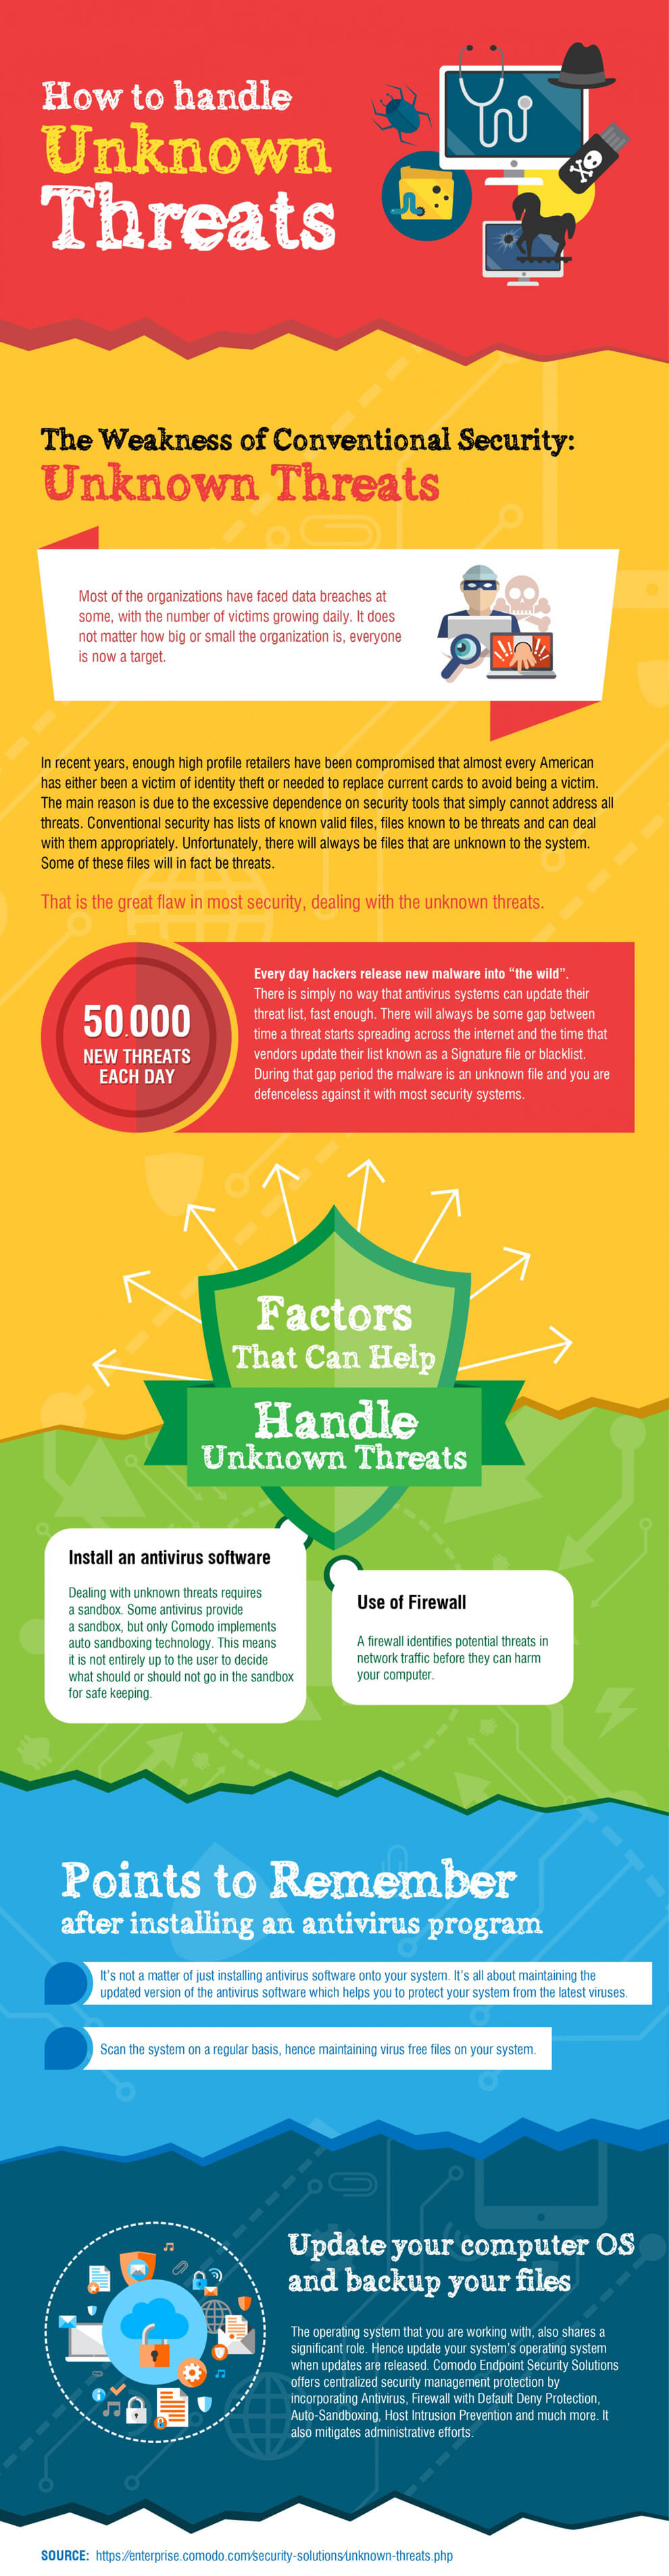 how-to-handle-unknown-threats_infographic